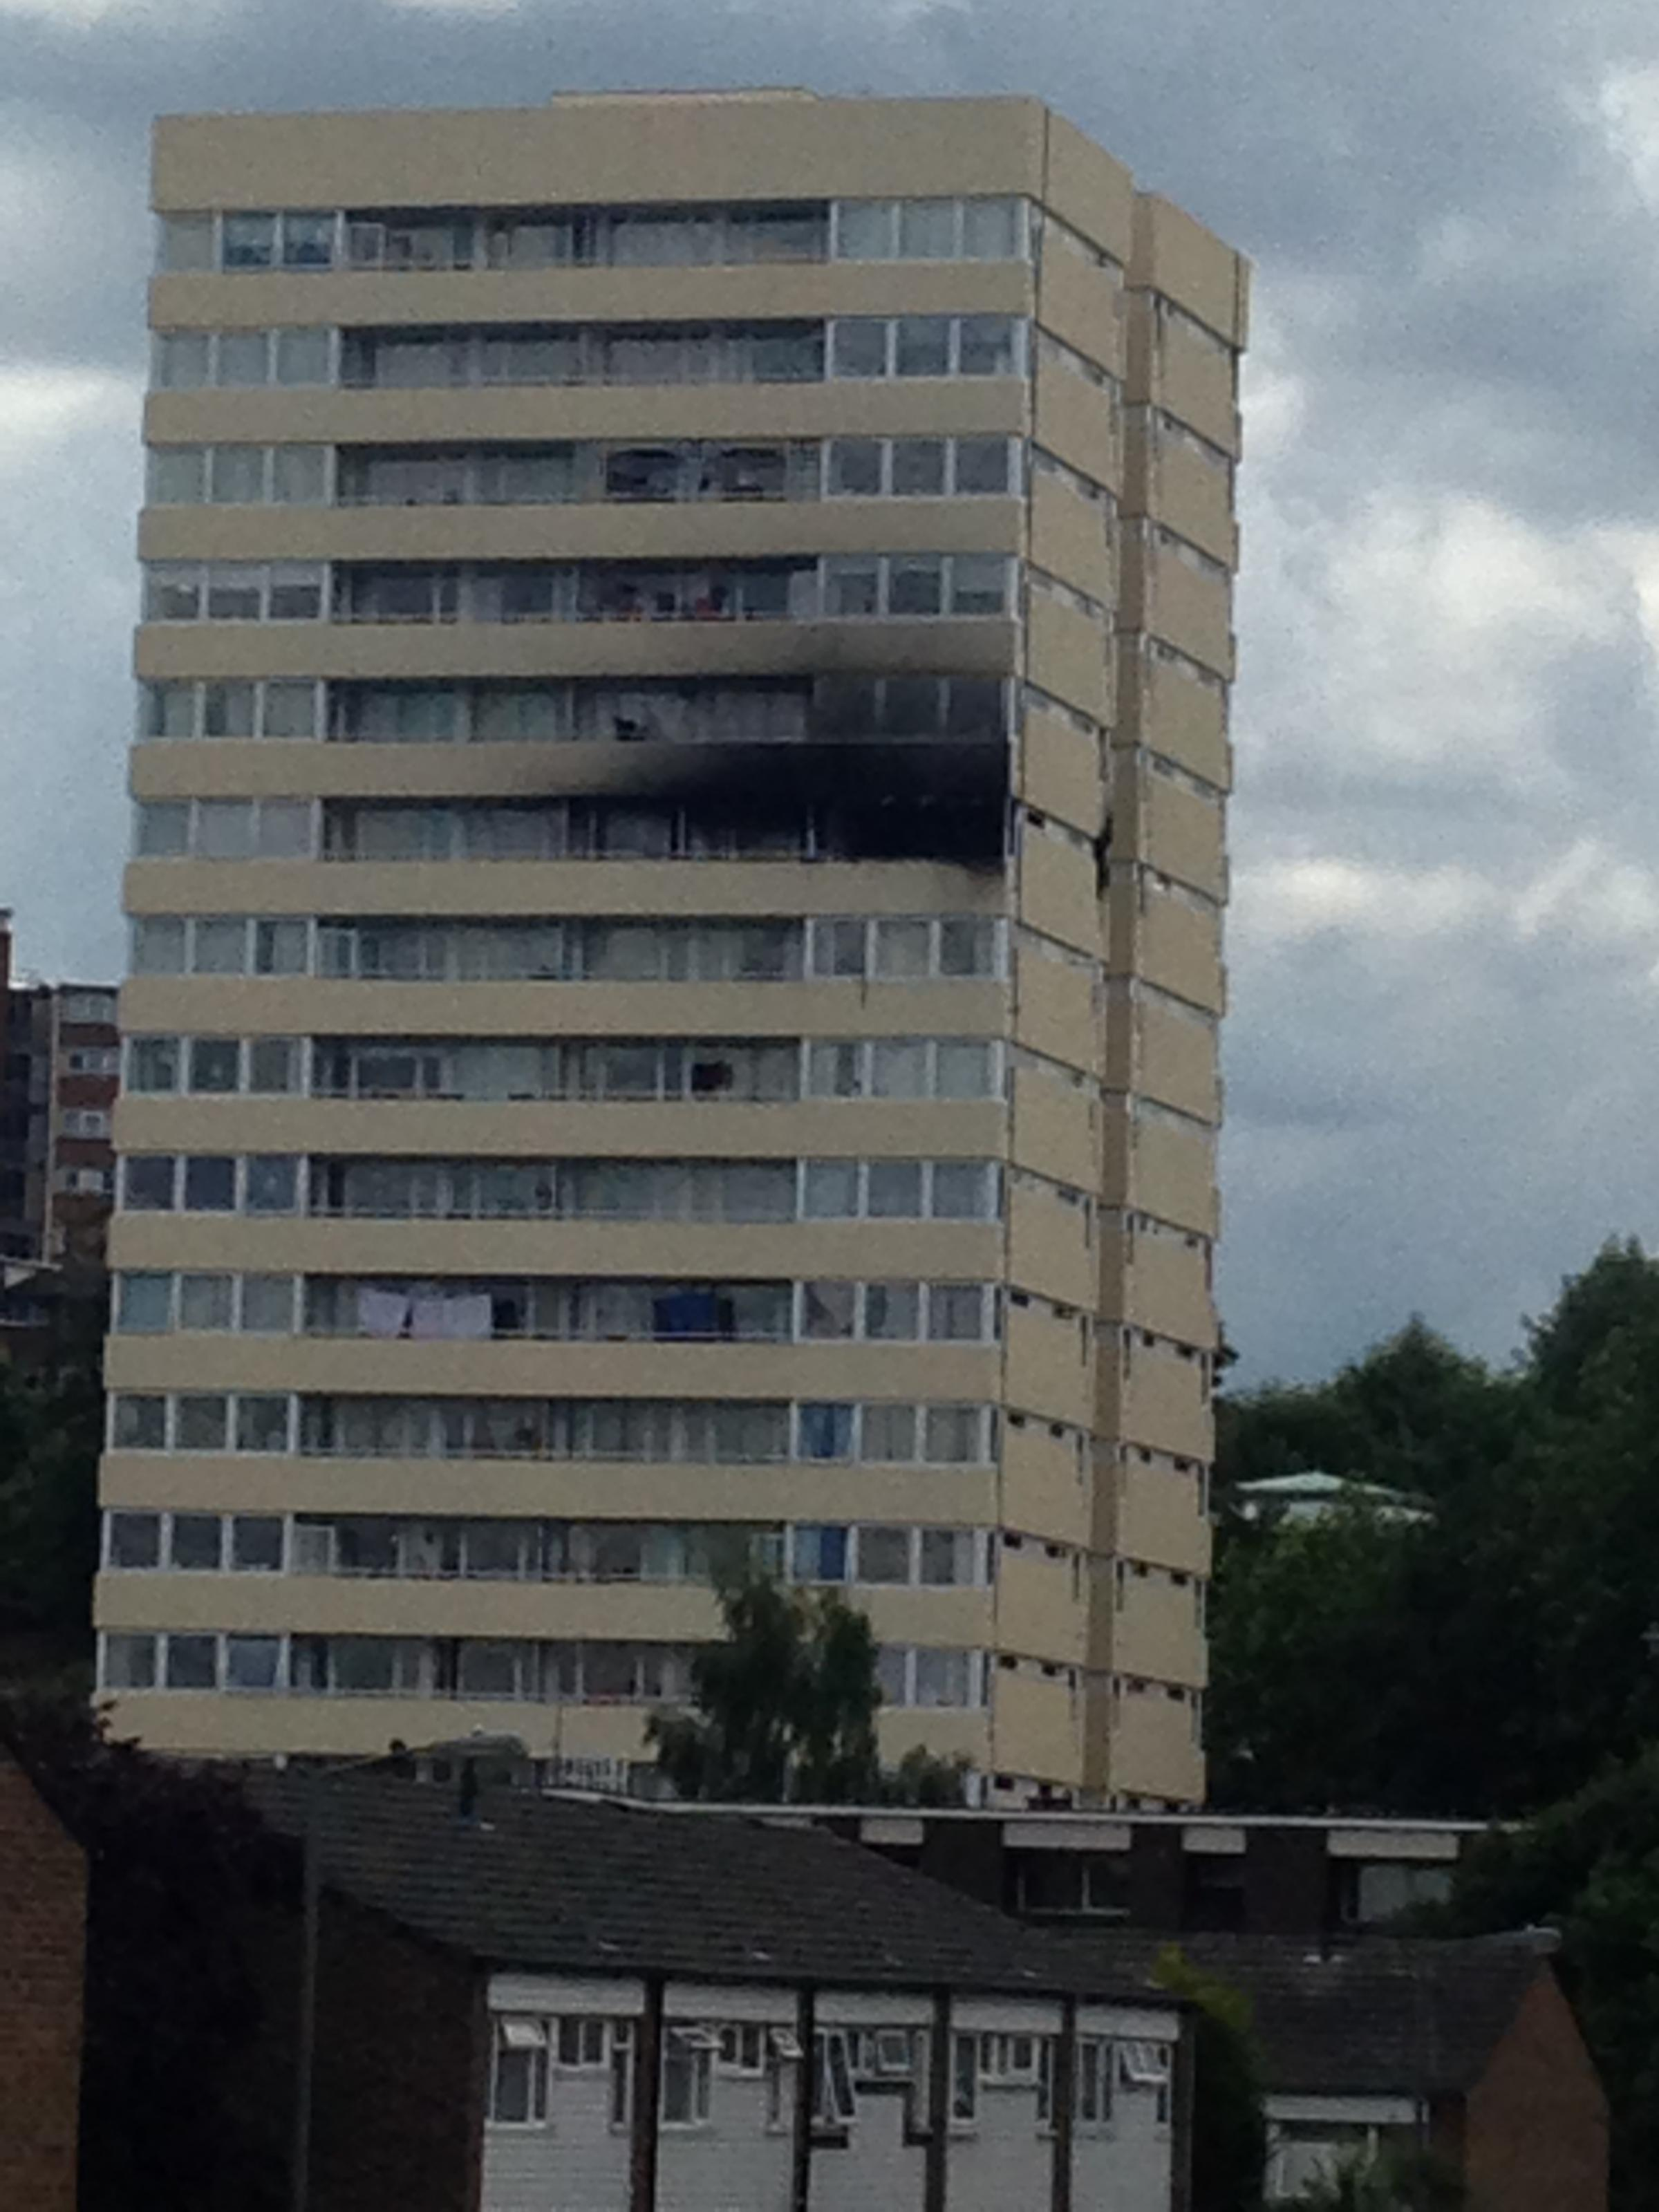 A man fell from a balcony at Andrew Reed House, Linstead Way, Southfields, during a fire on the ninth floor